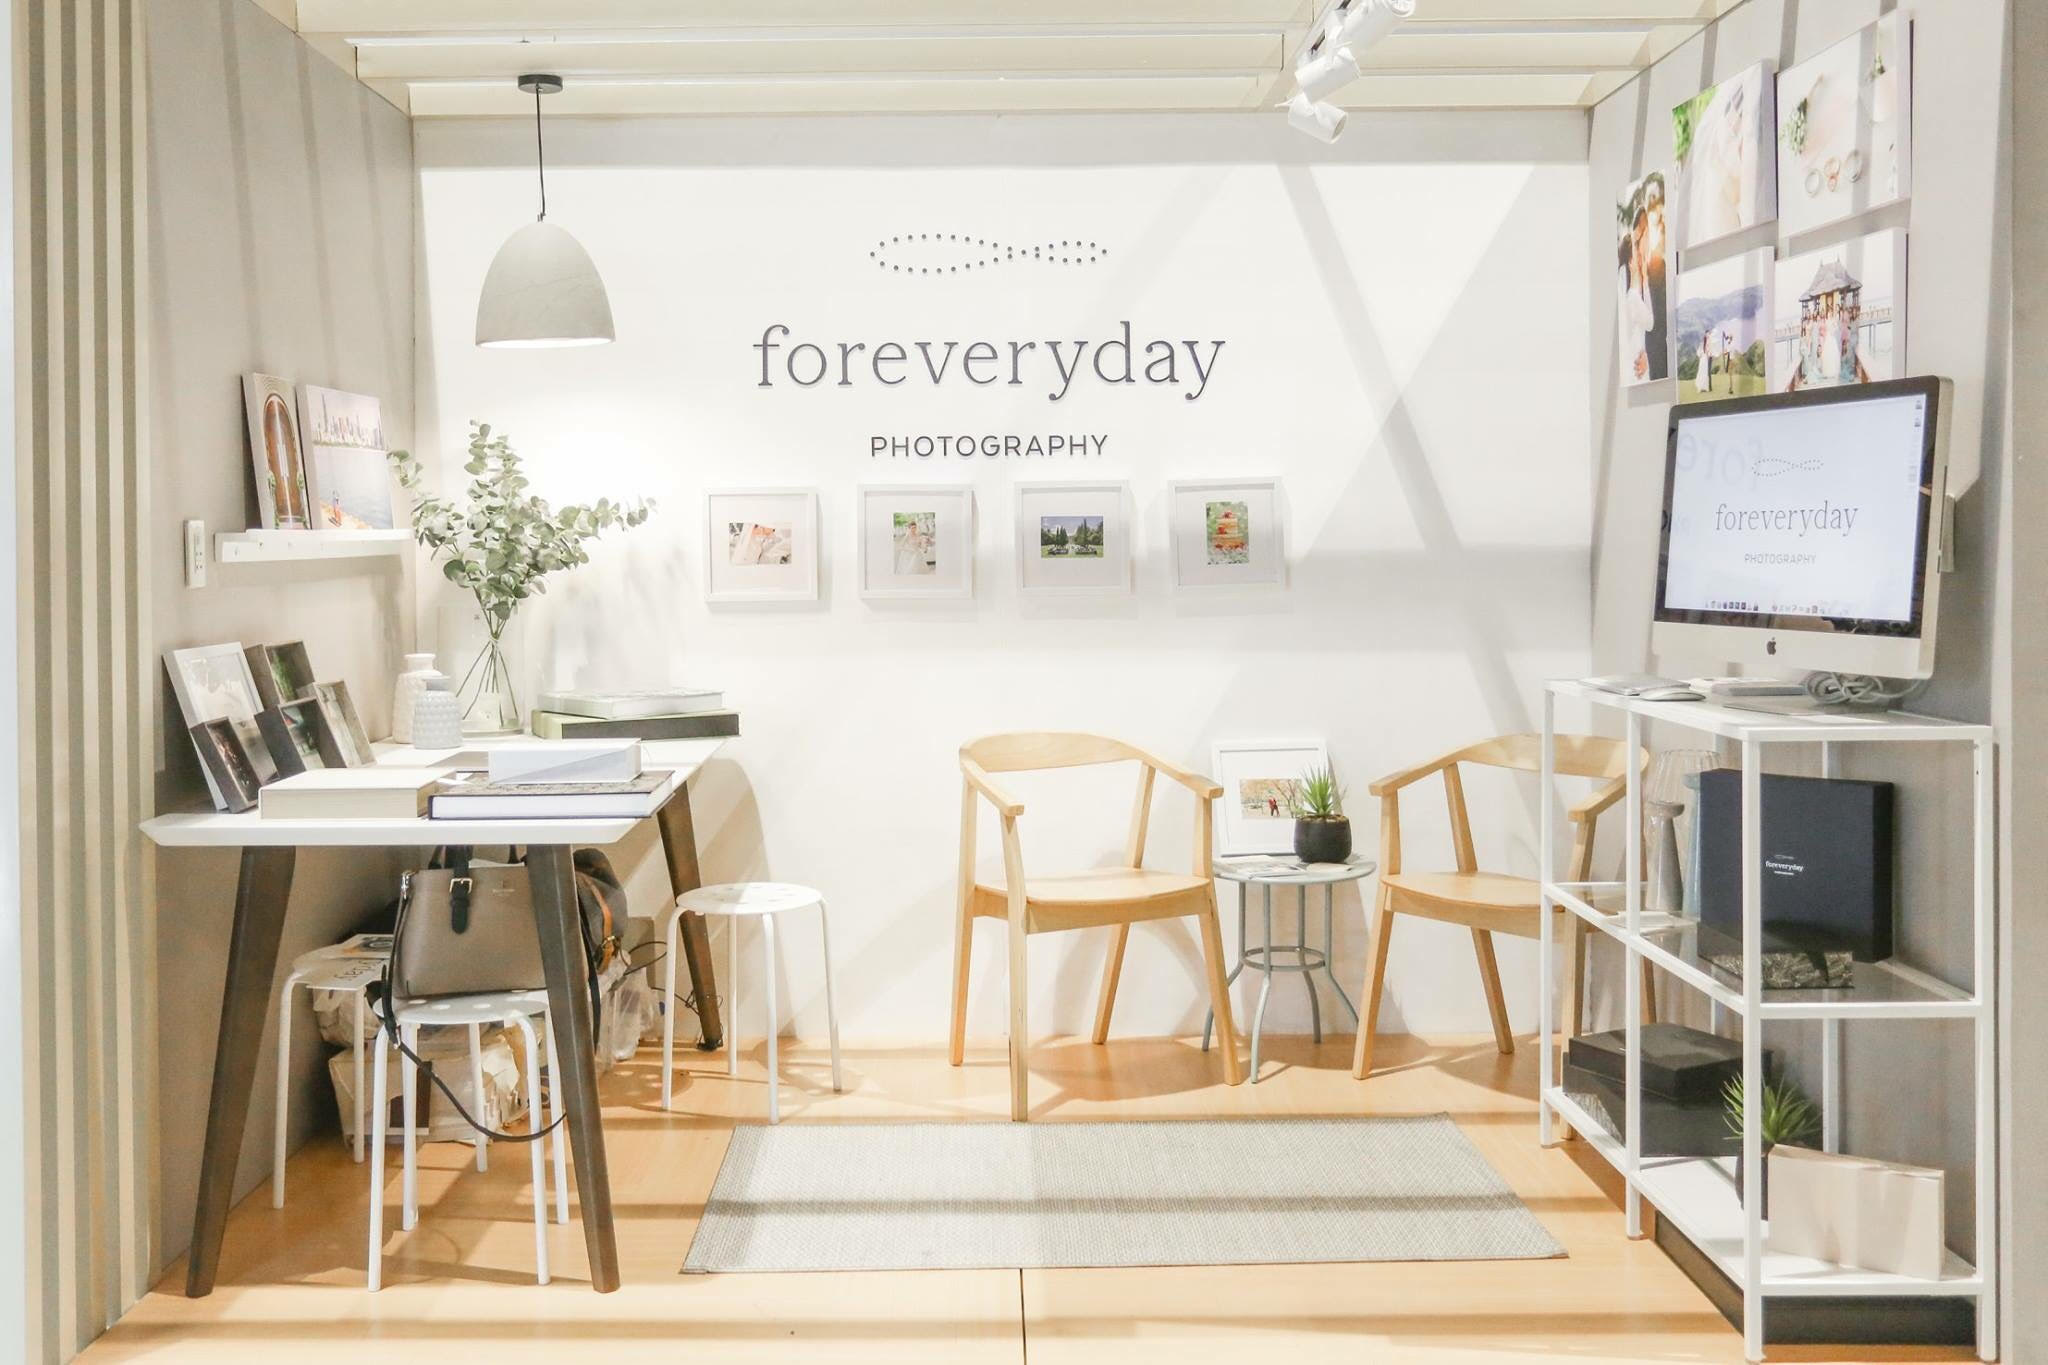 Forevery Day Photography : Exhibit Booth